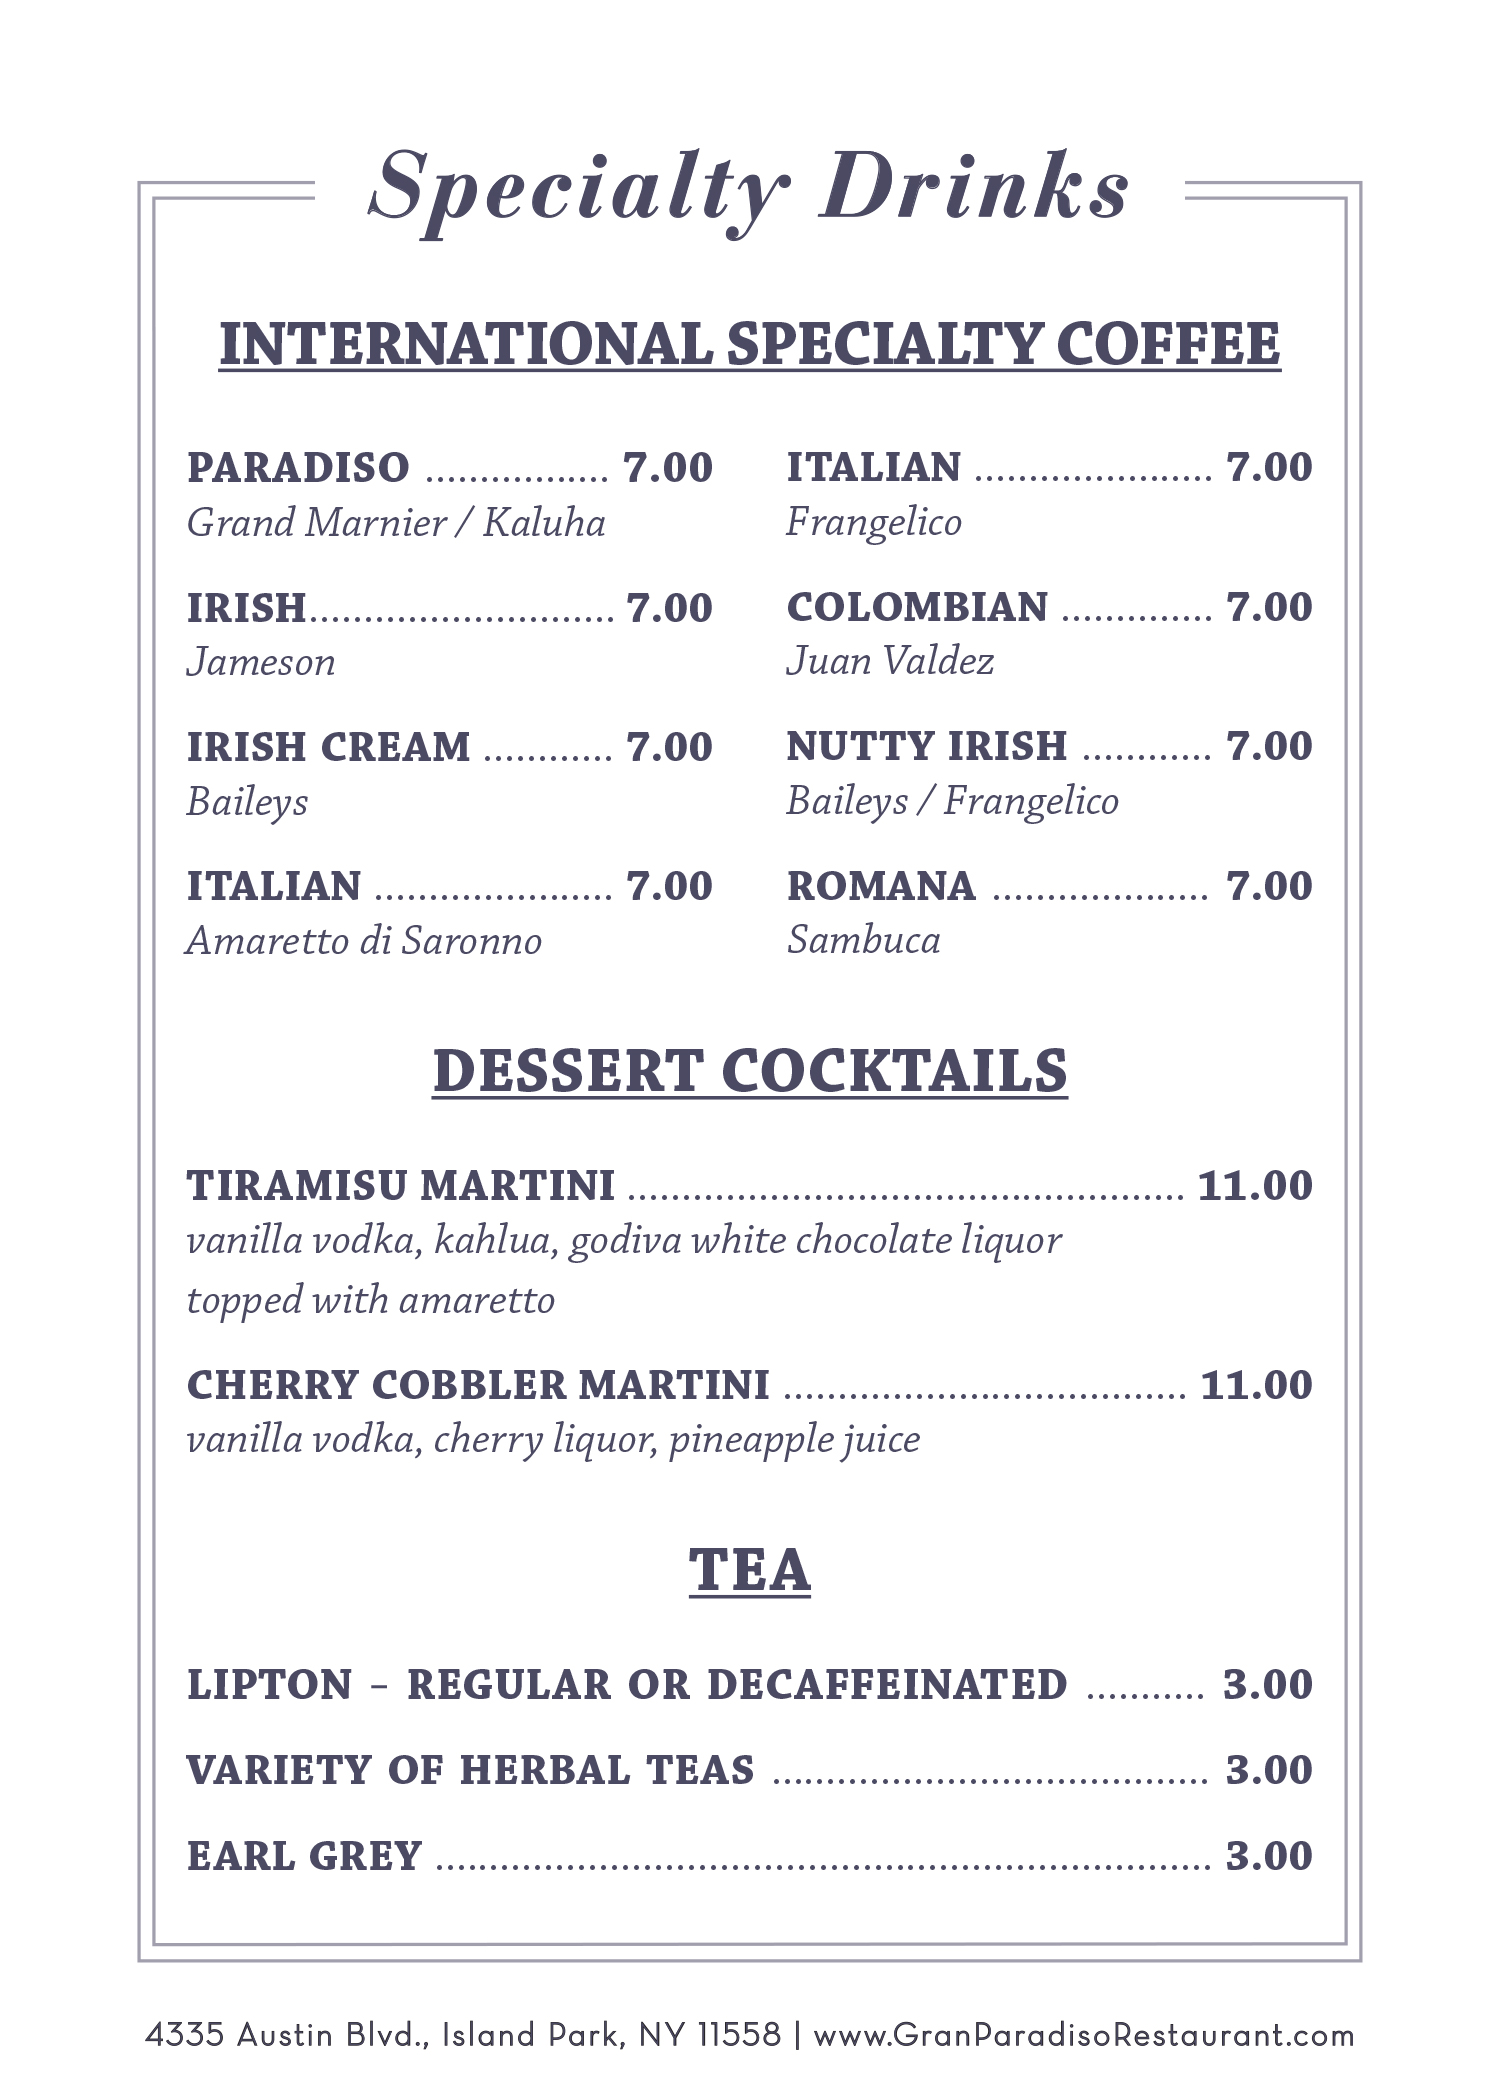 Gran Paradiso Specialty Coffee And Dessert Cocktails